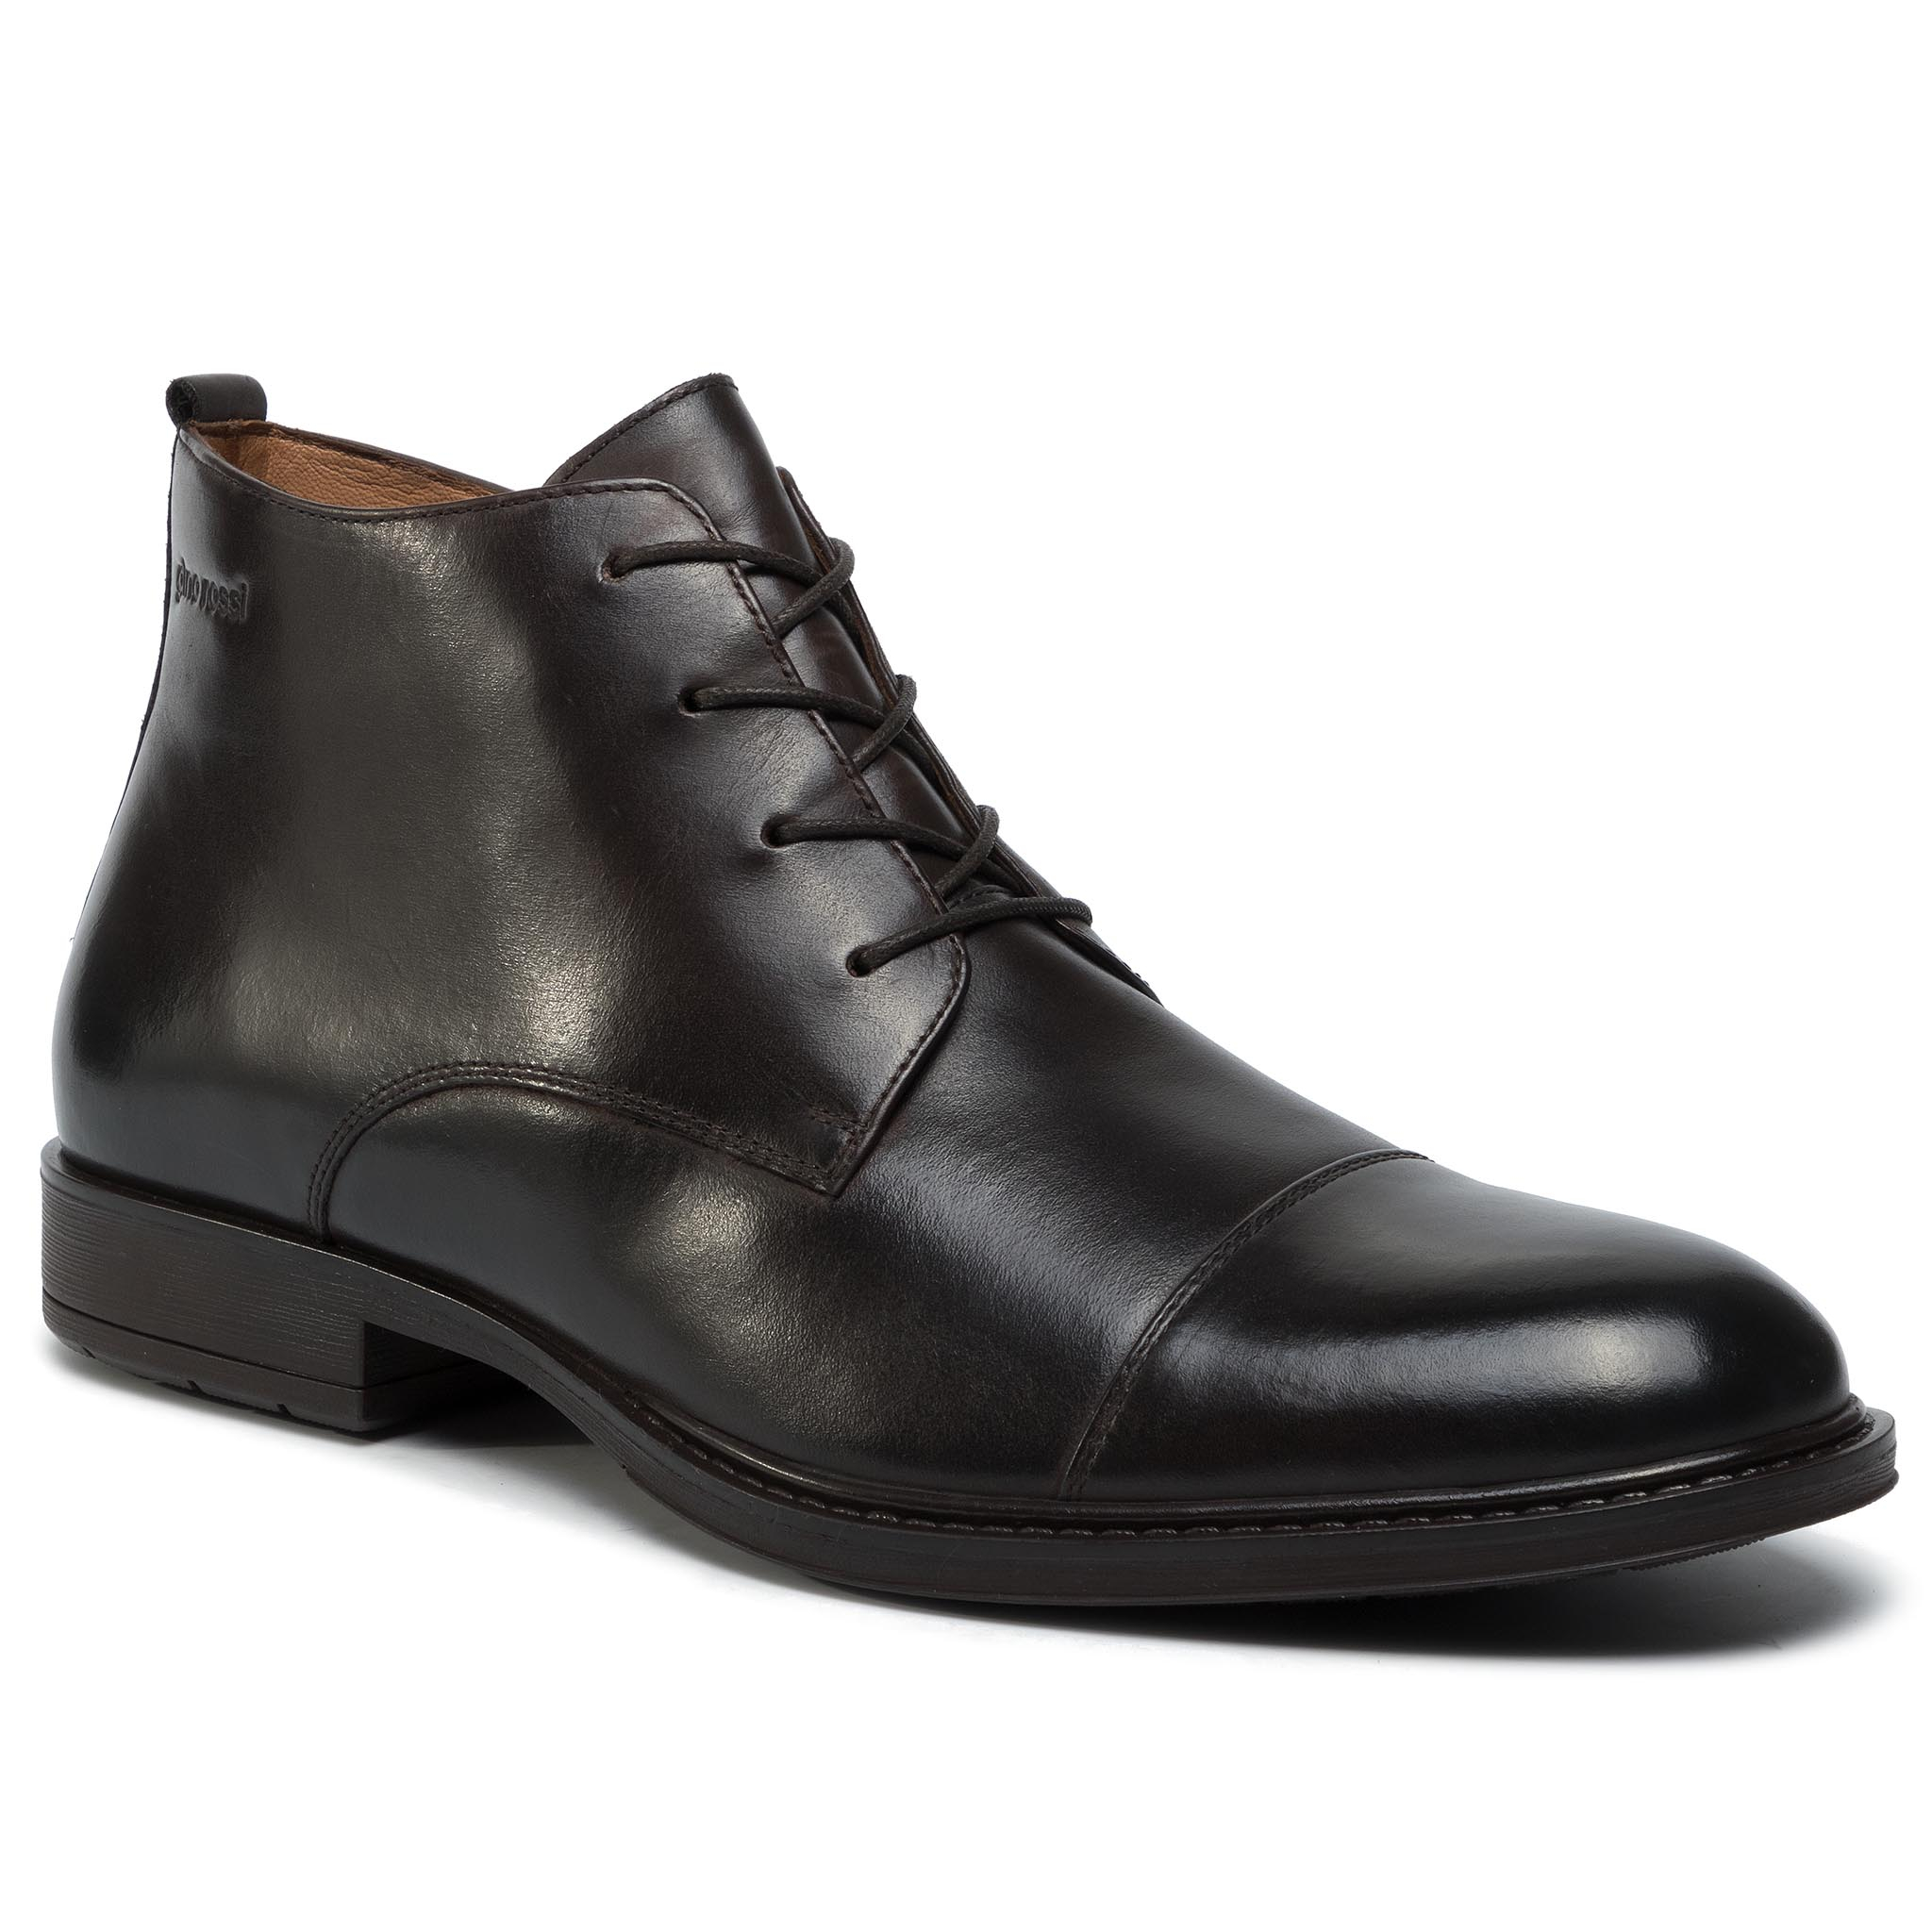 Ghete GINO ROSSI - MI08-C401-440-06 Brown